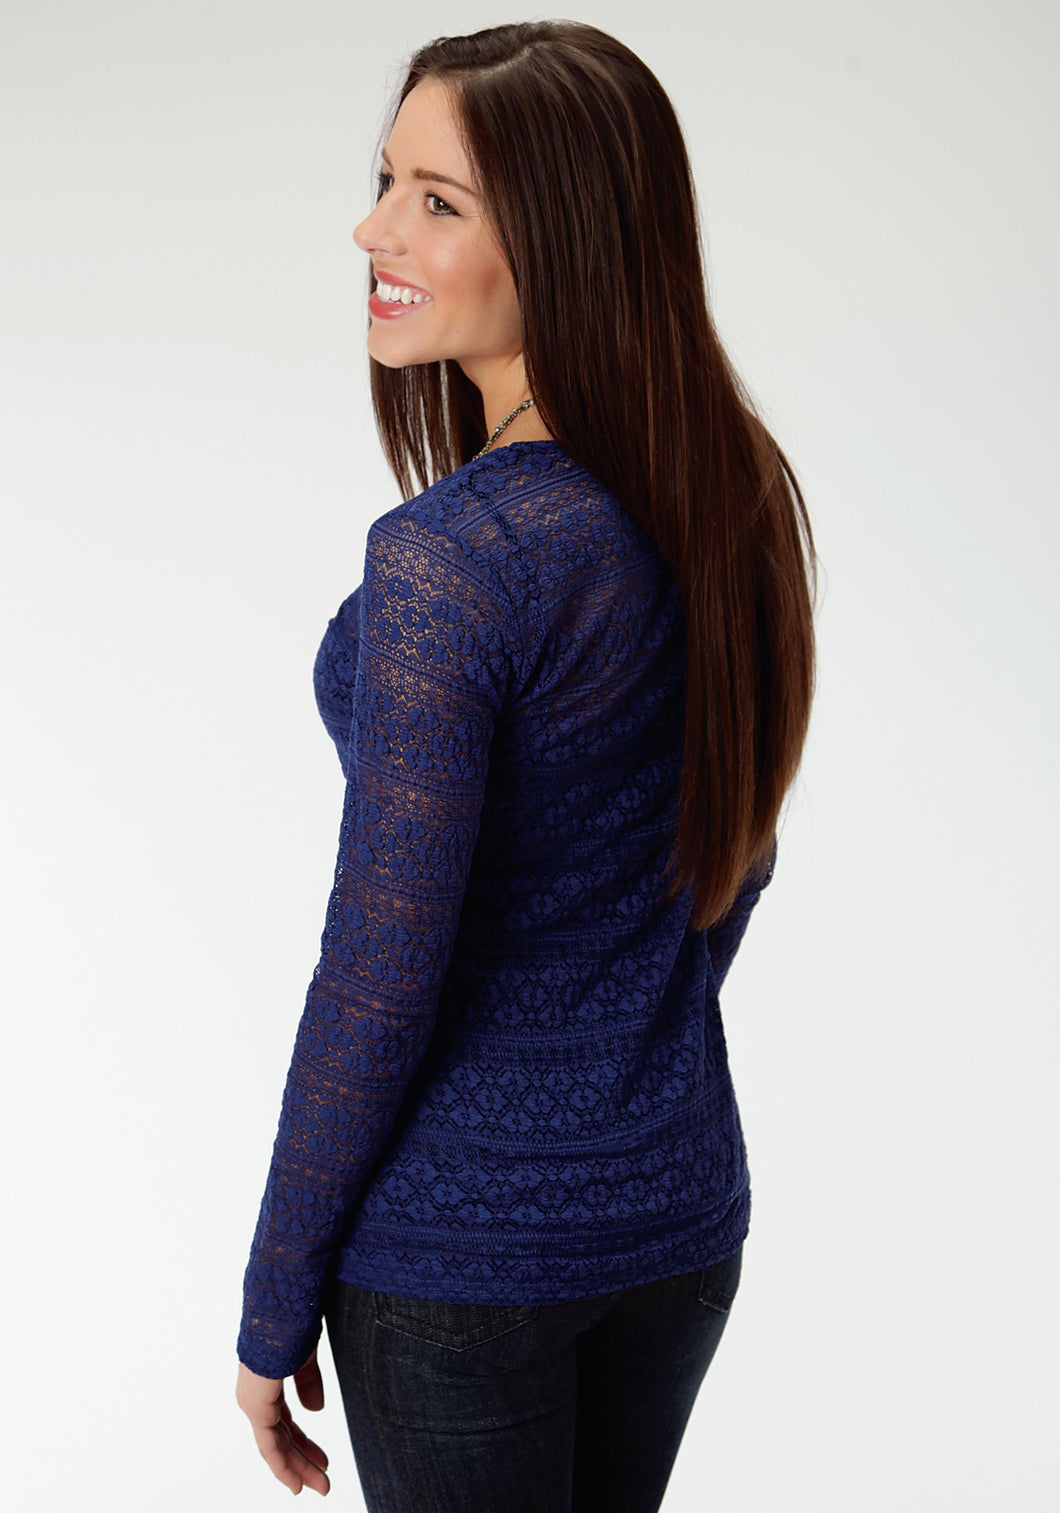 Studio West- Out Of The Blue Swest Womens Long Sleeve Shirt 0589 Allover Stretch Lace Tee